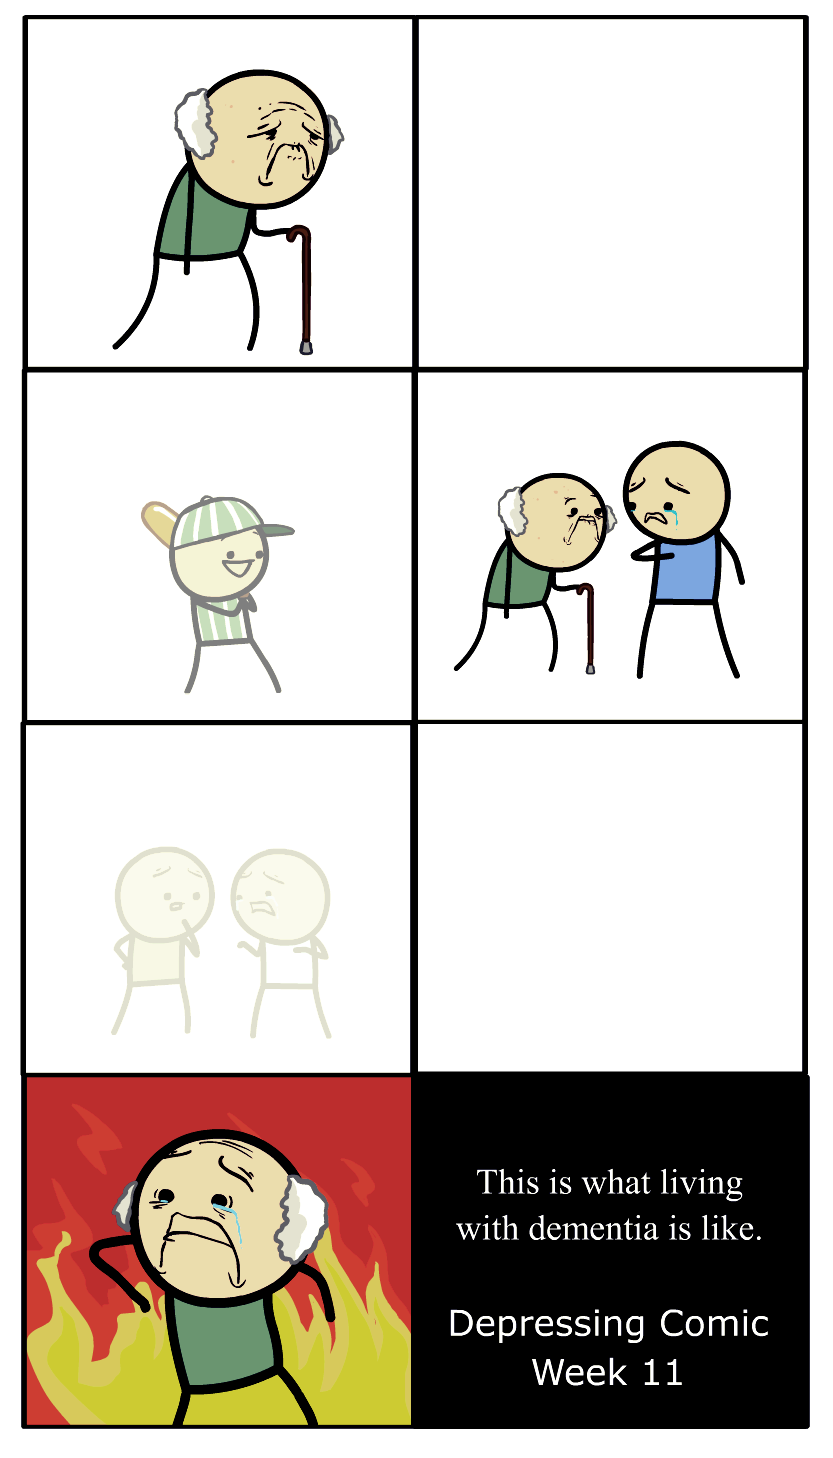 http://files.explosm.net/comics/Dave/dcw11maybe.png